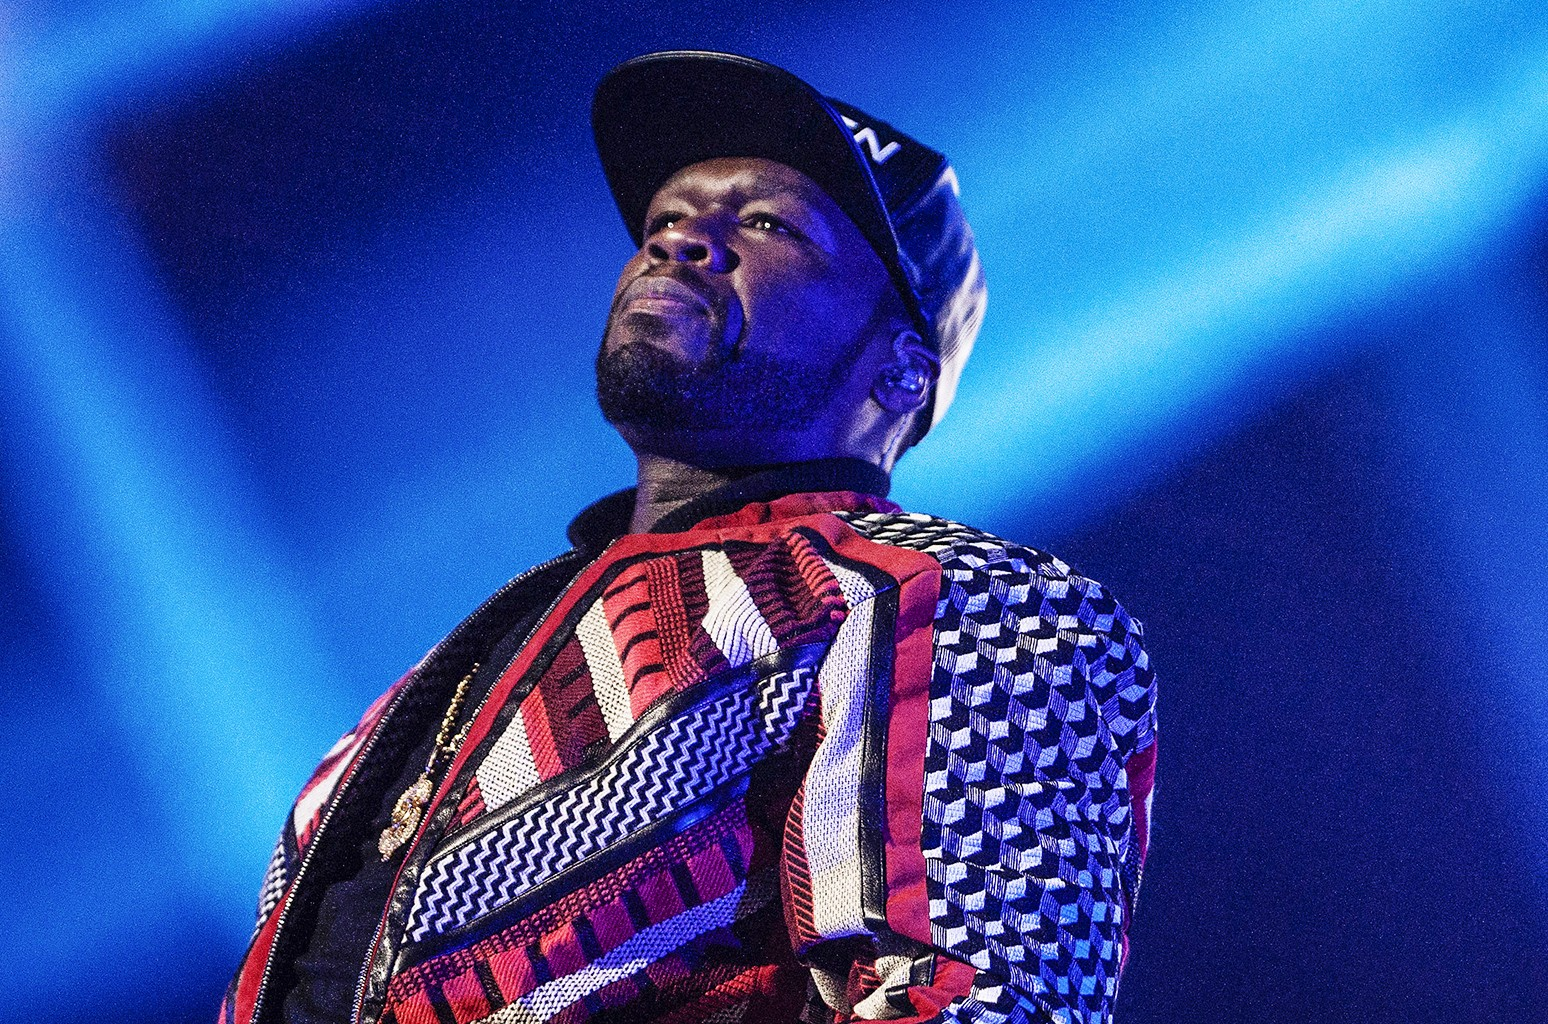 50 Cent performs at The SSE Hydro on Nov. 4, 2015 in Glasgow, Scotland.